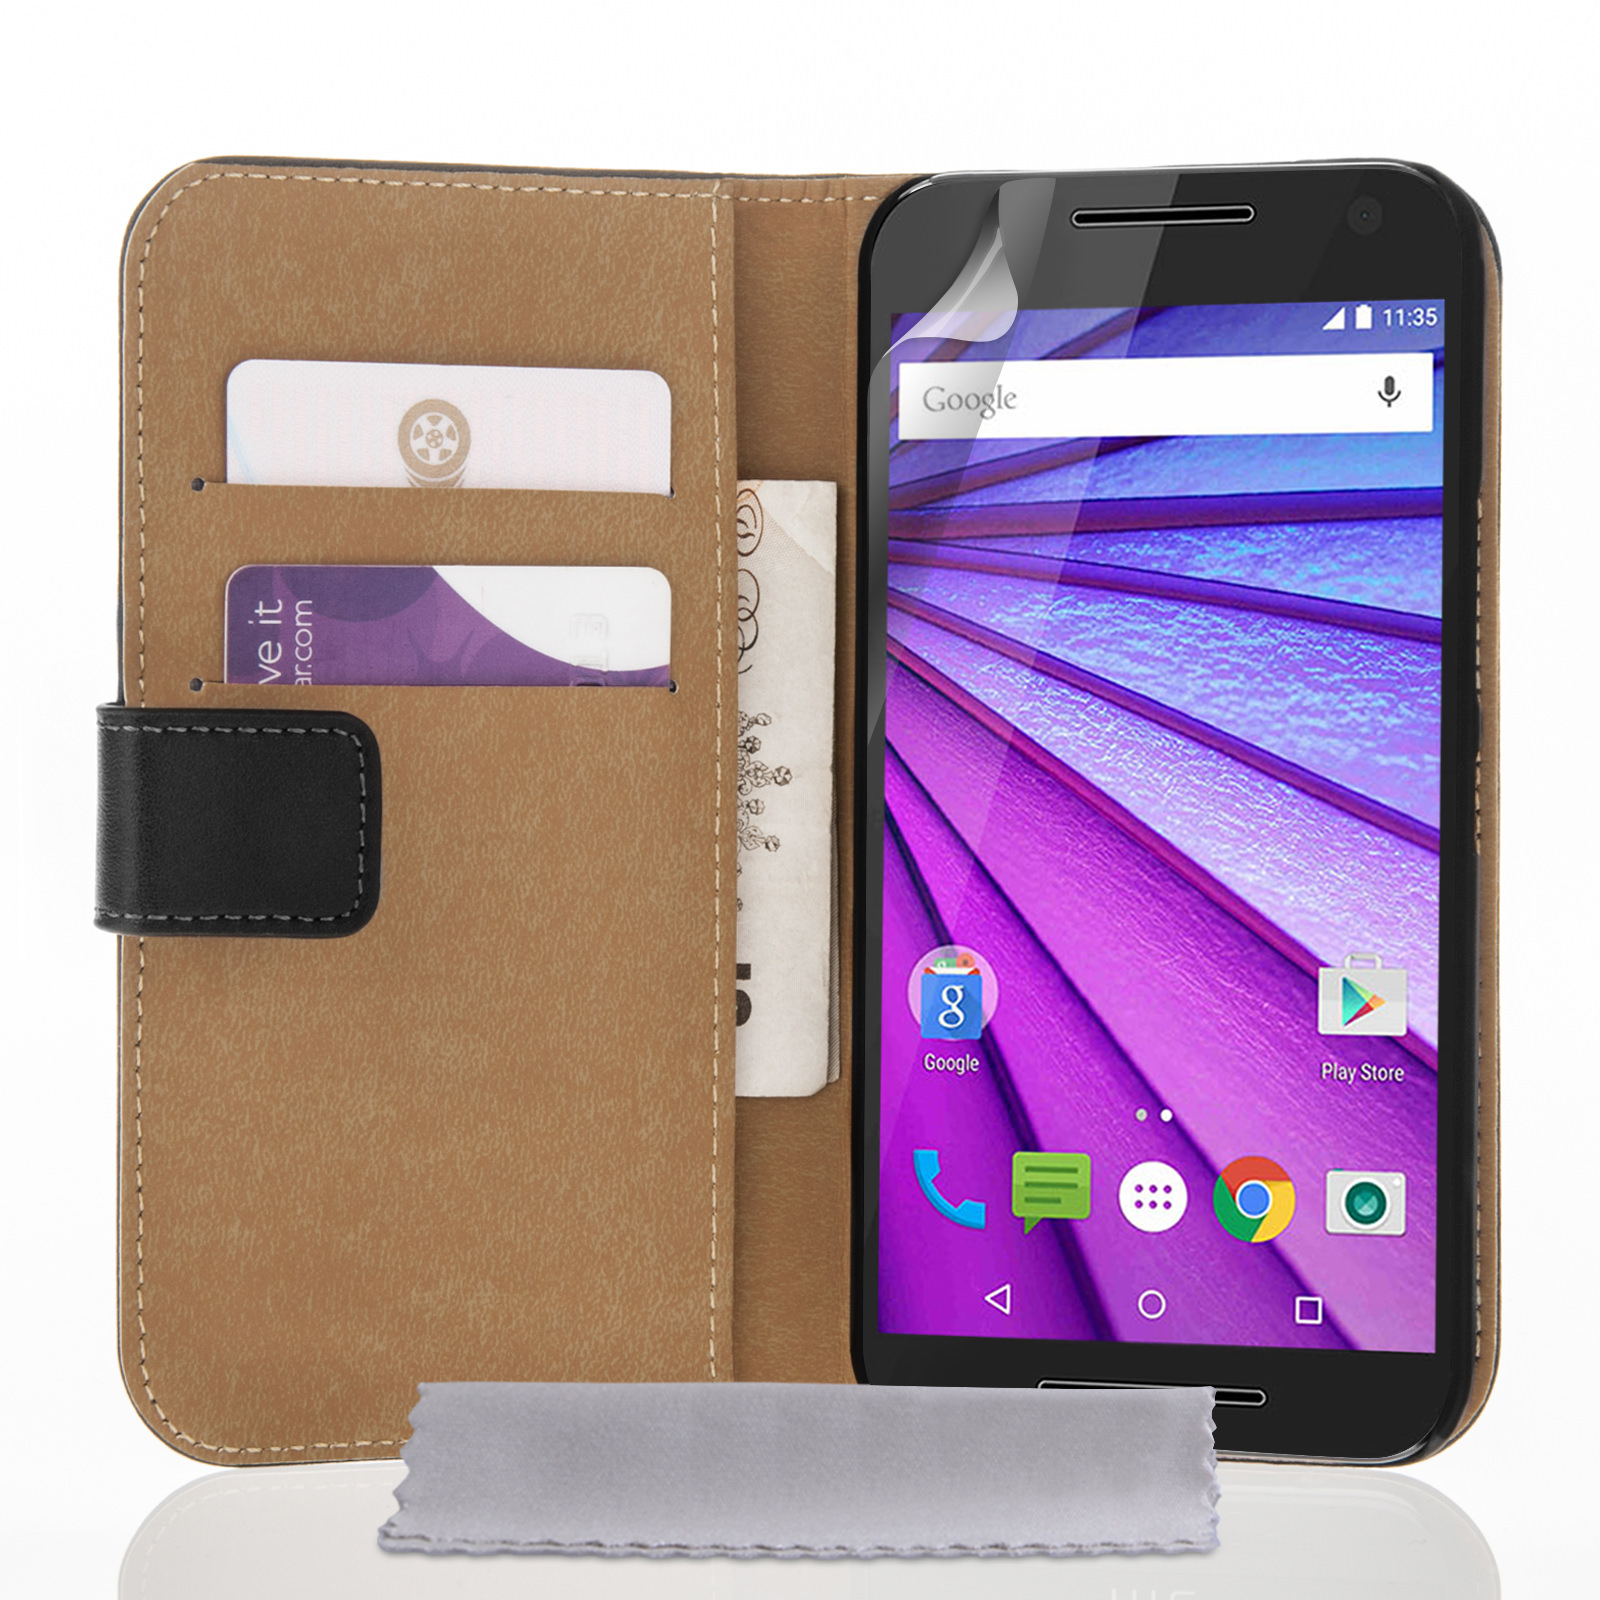 Yousave Accessories Motorola Moto G 3rd Gen Real Leather Wallet Case - Black